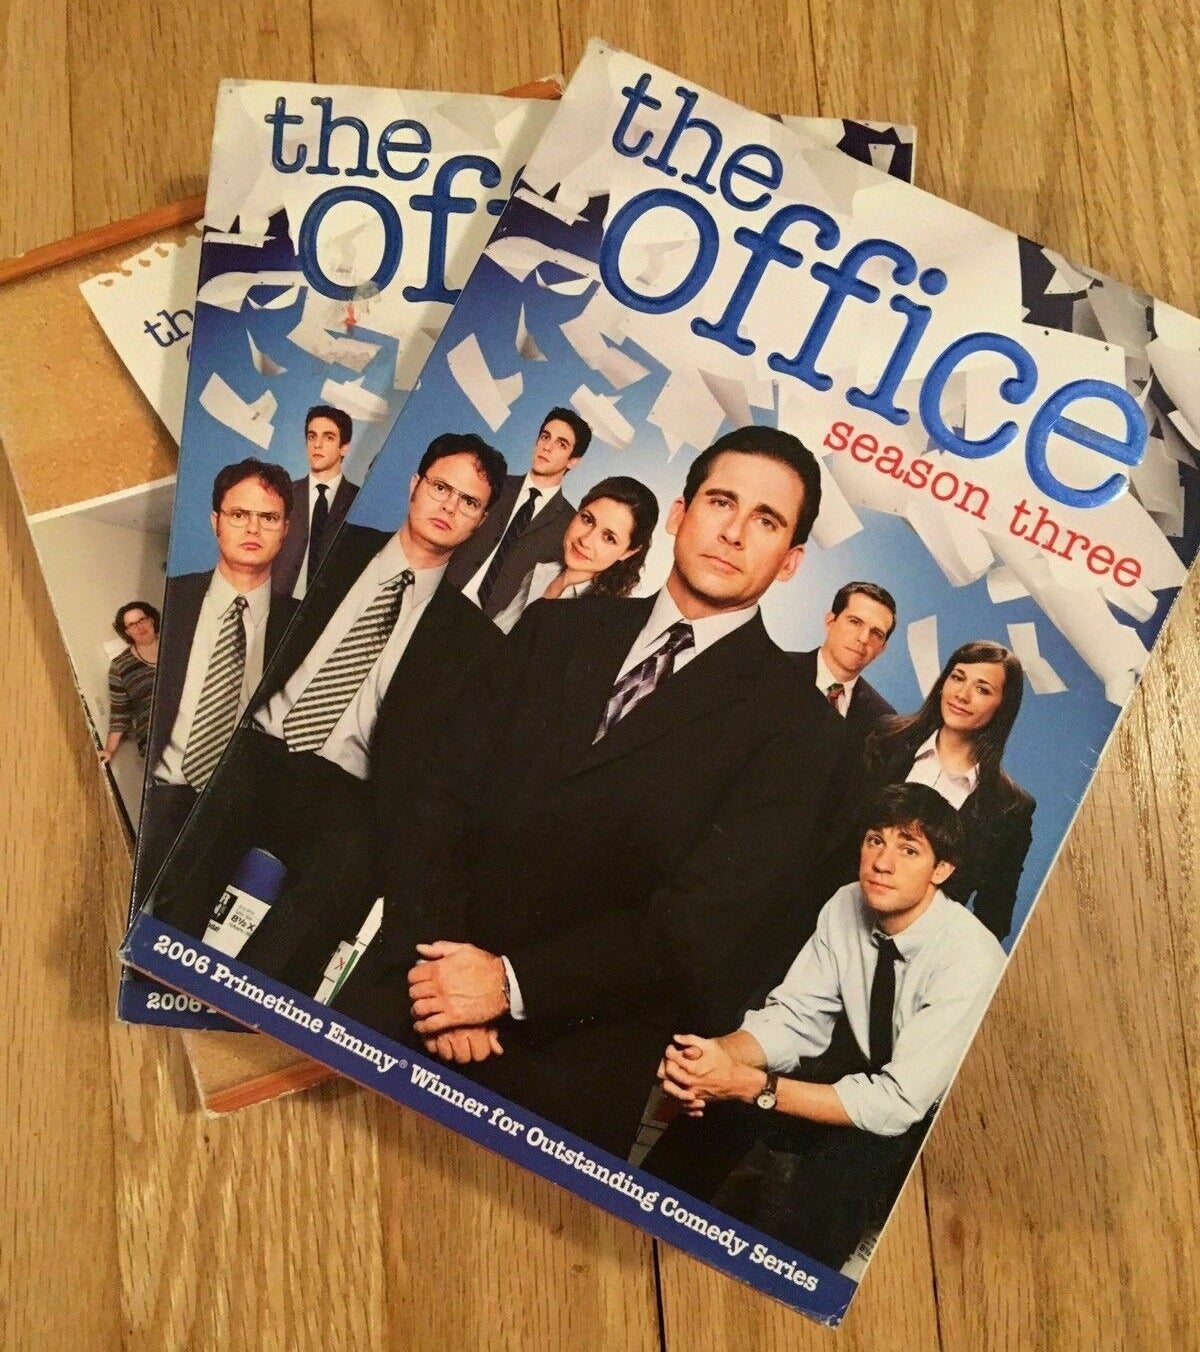 The cover for Season 4 of The Office on DVD.